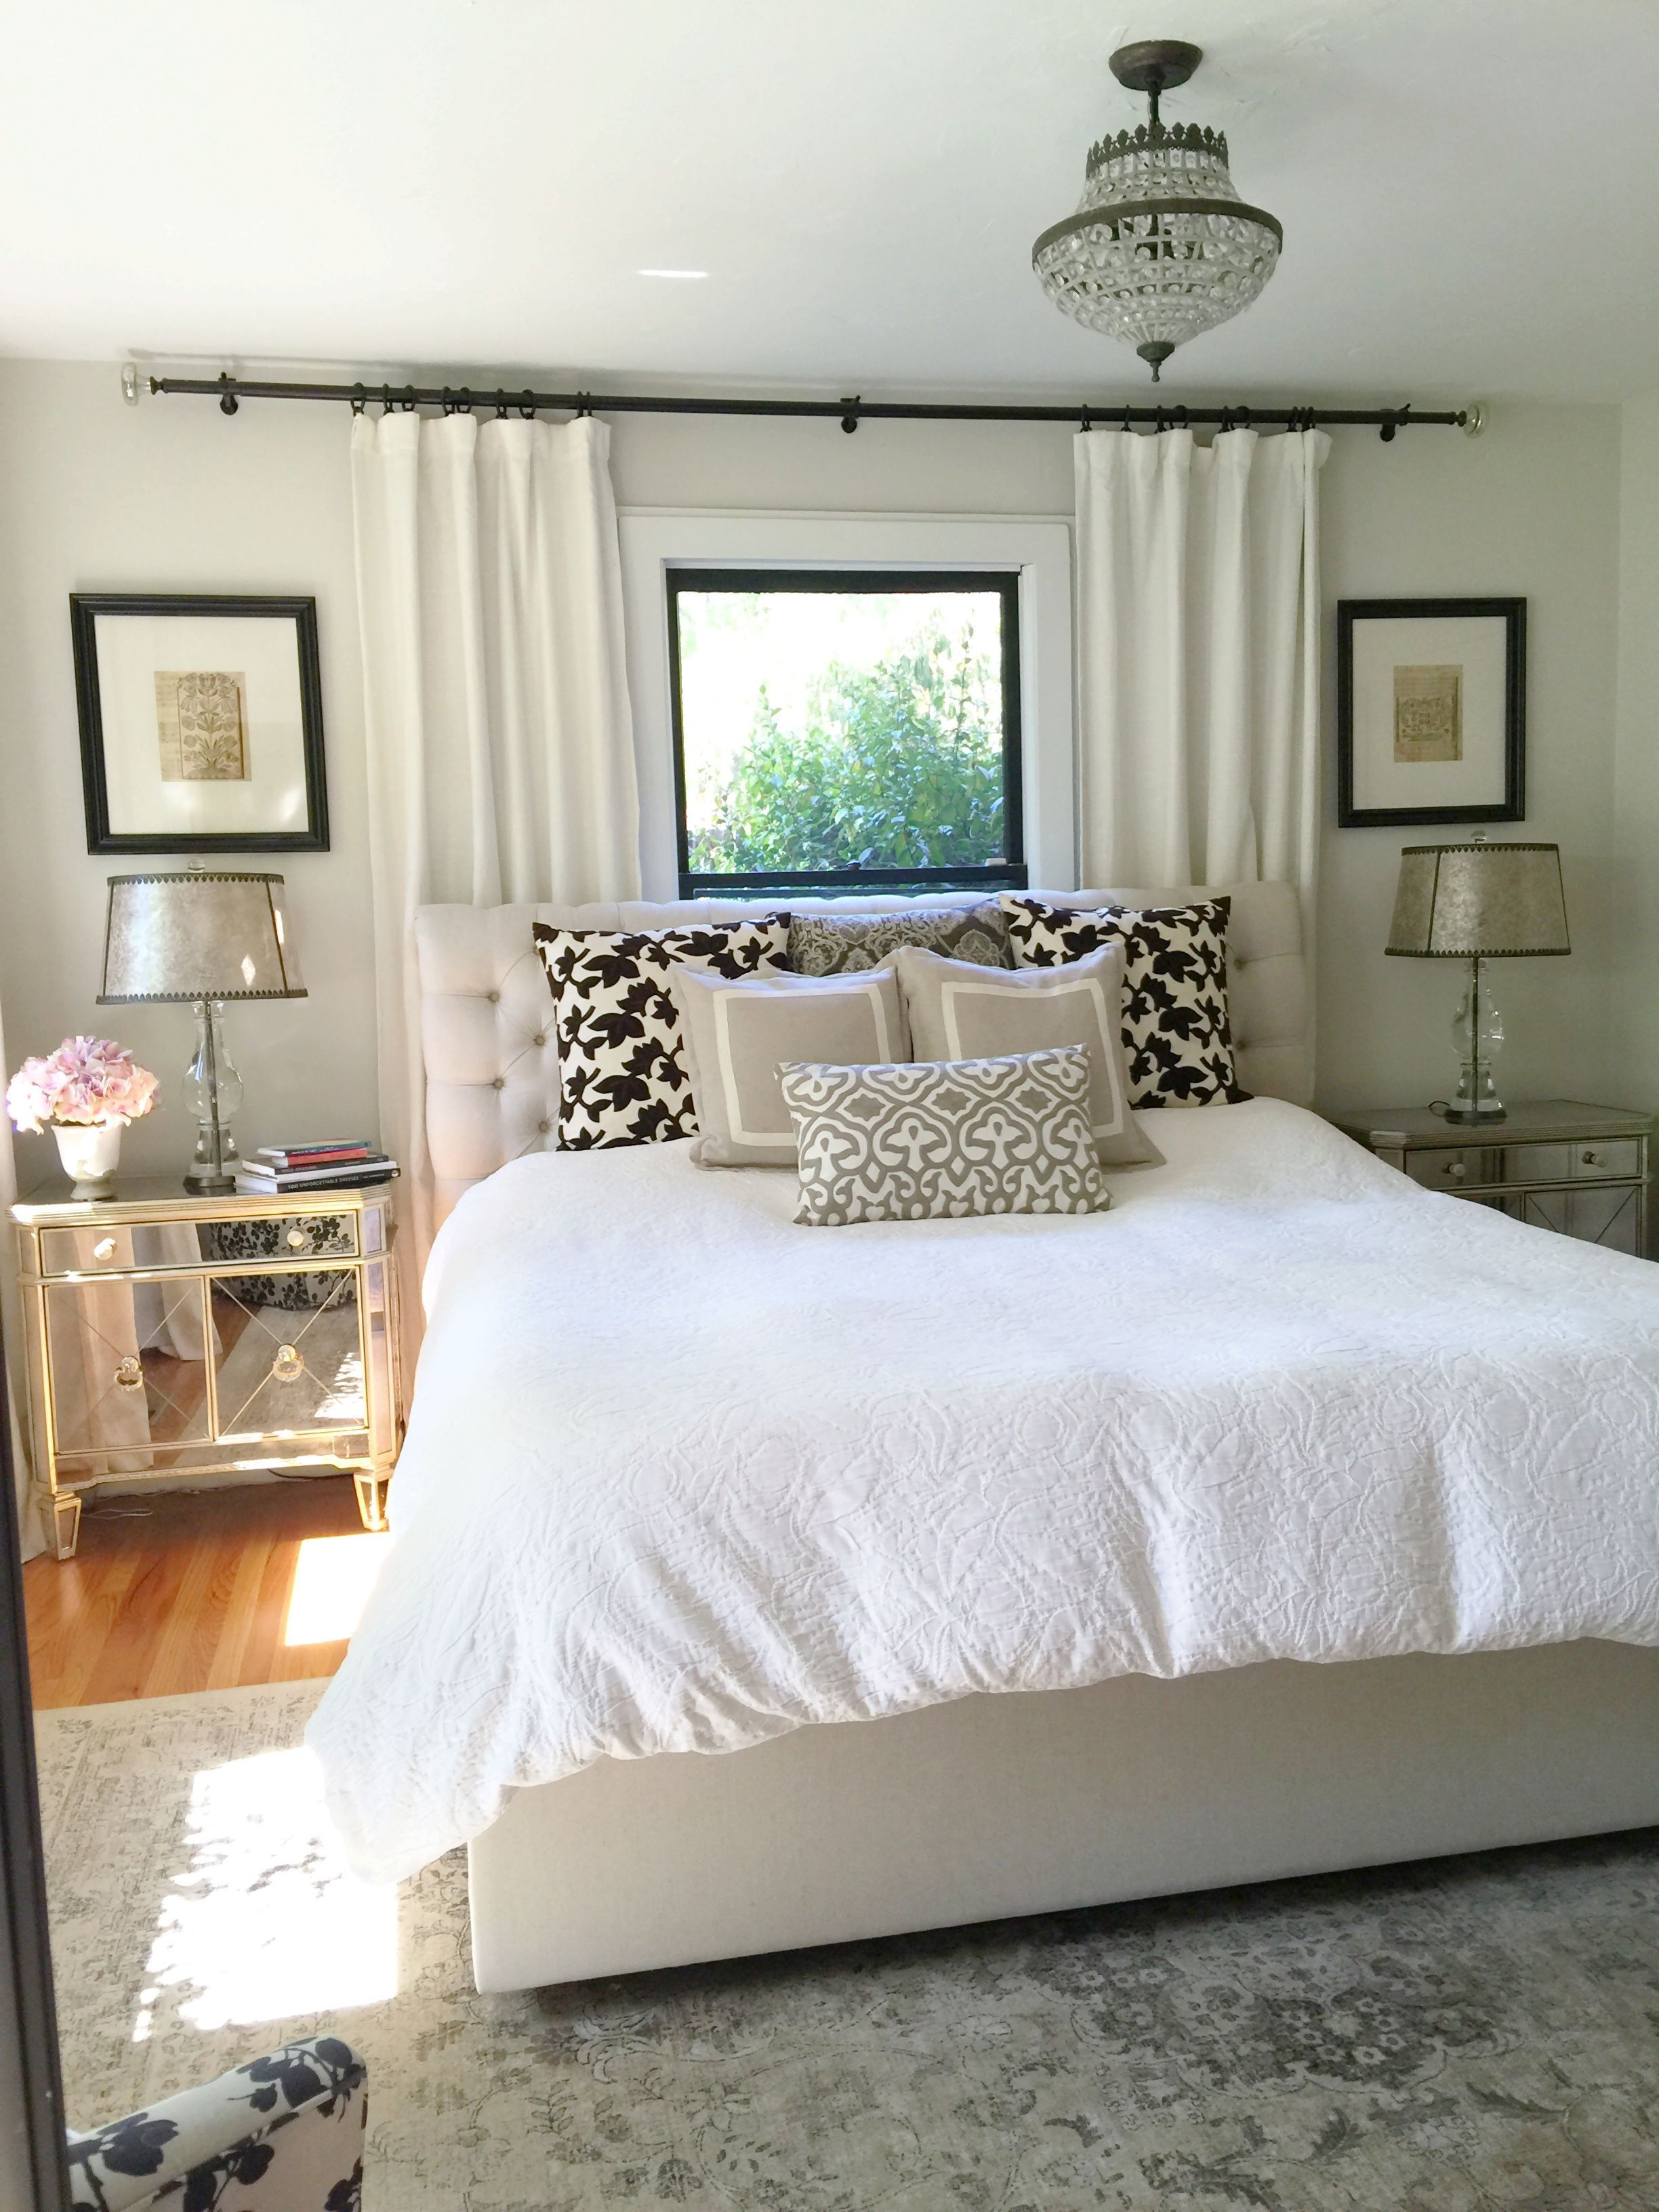 A Heritage Of Harmony Home Small Master Bedroom King Size Bed